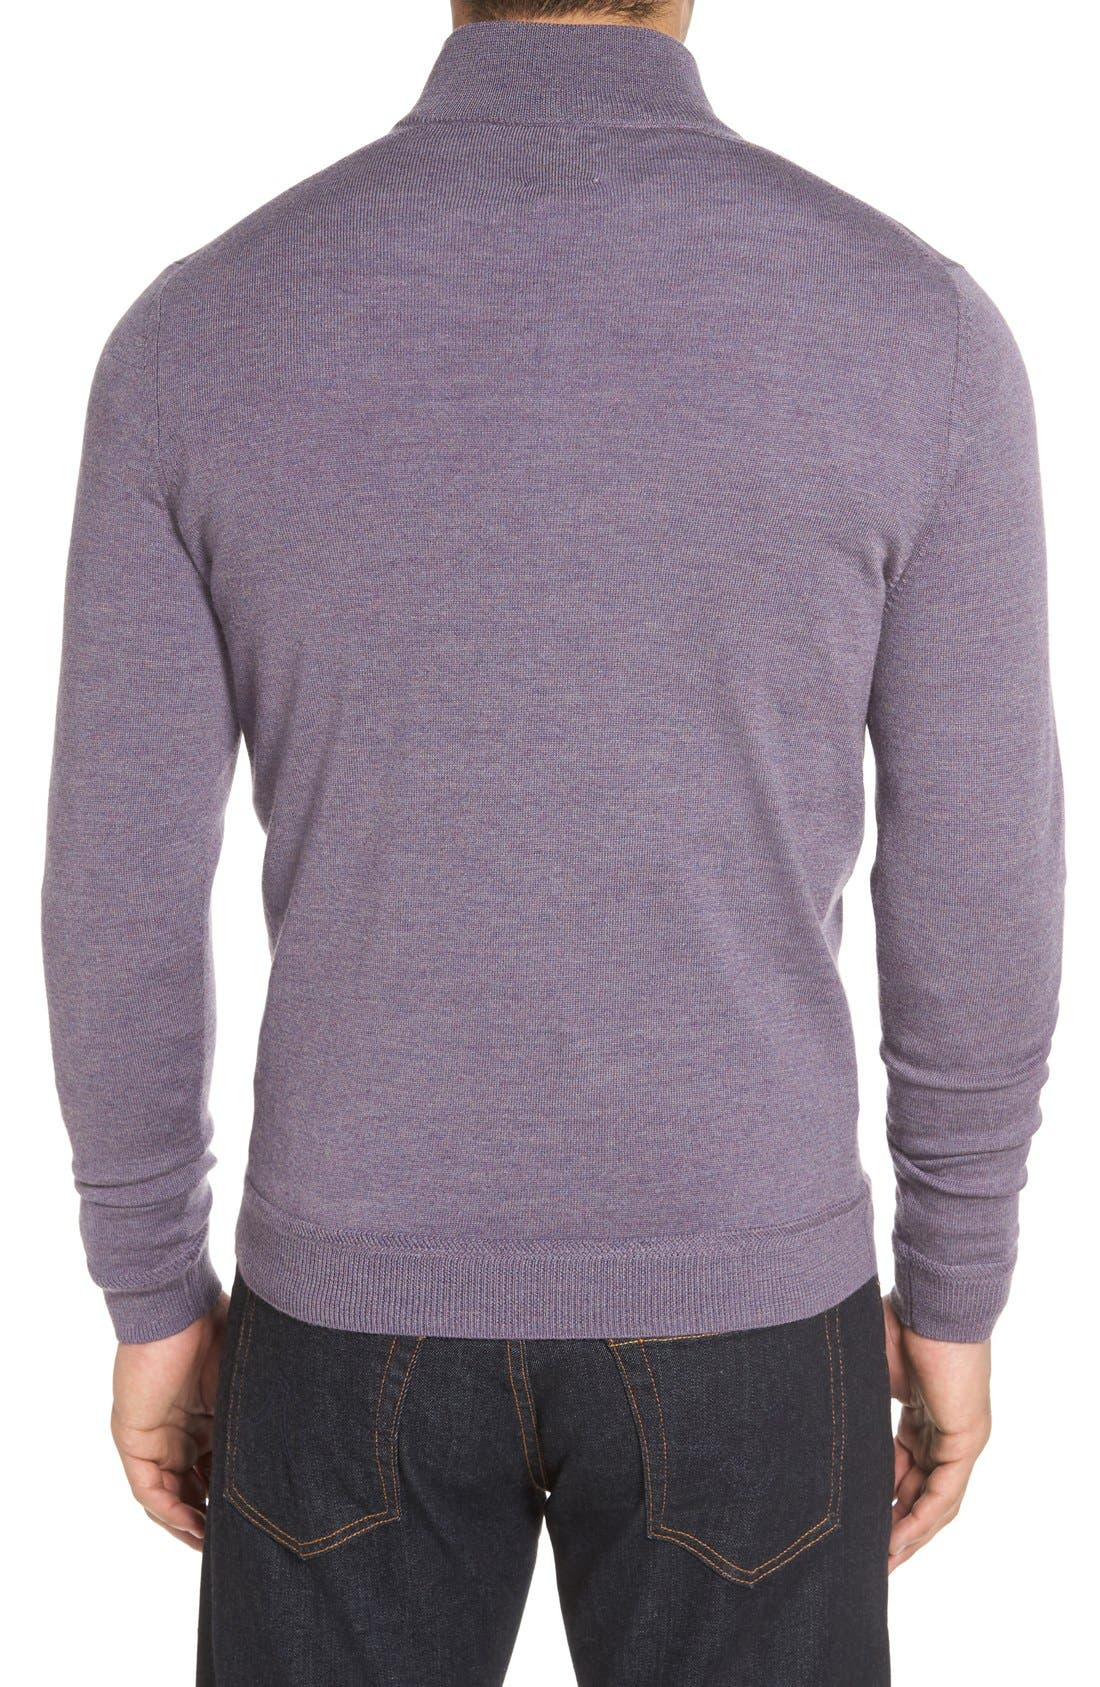 Alternate Image 2  - John W. Nordstrom® Merino Wool Quarter Zip Sweater